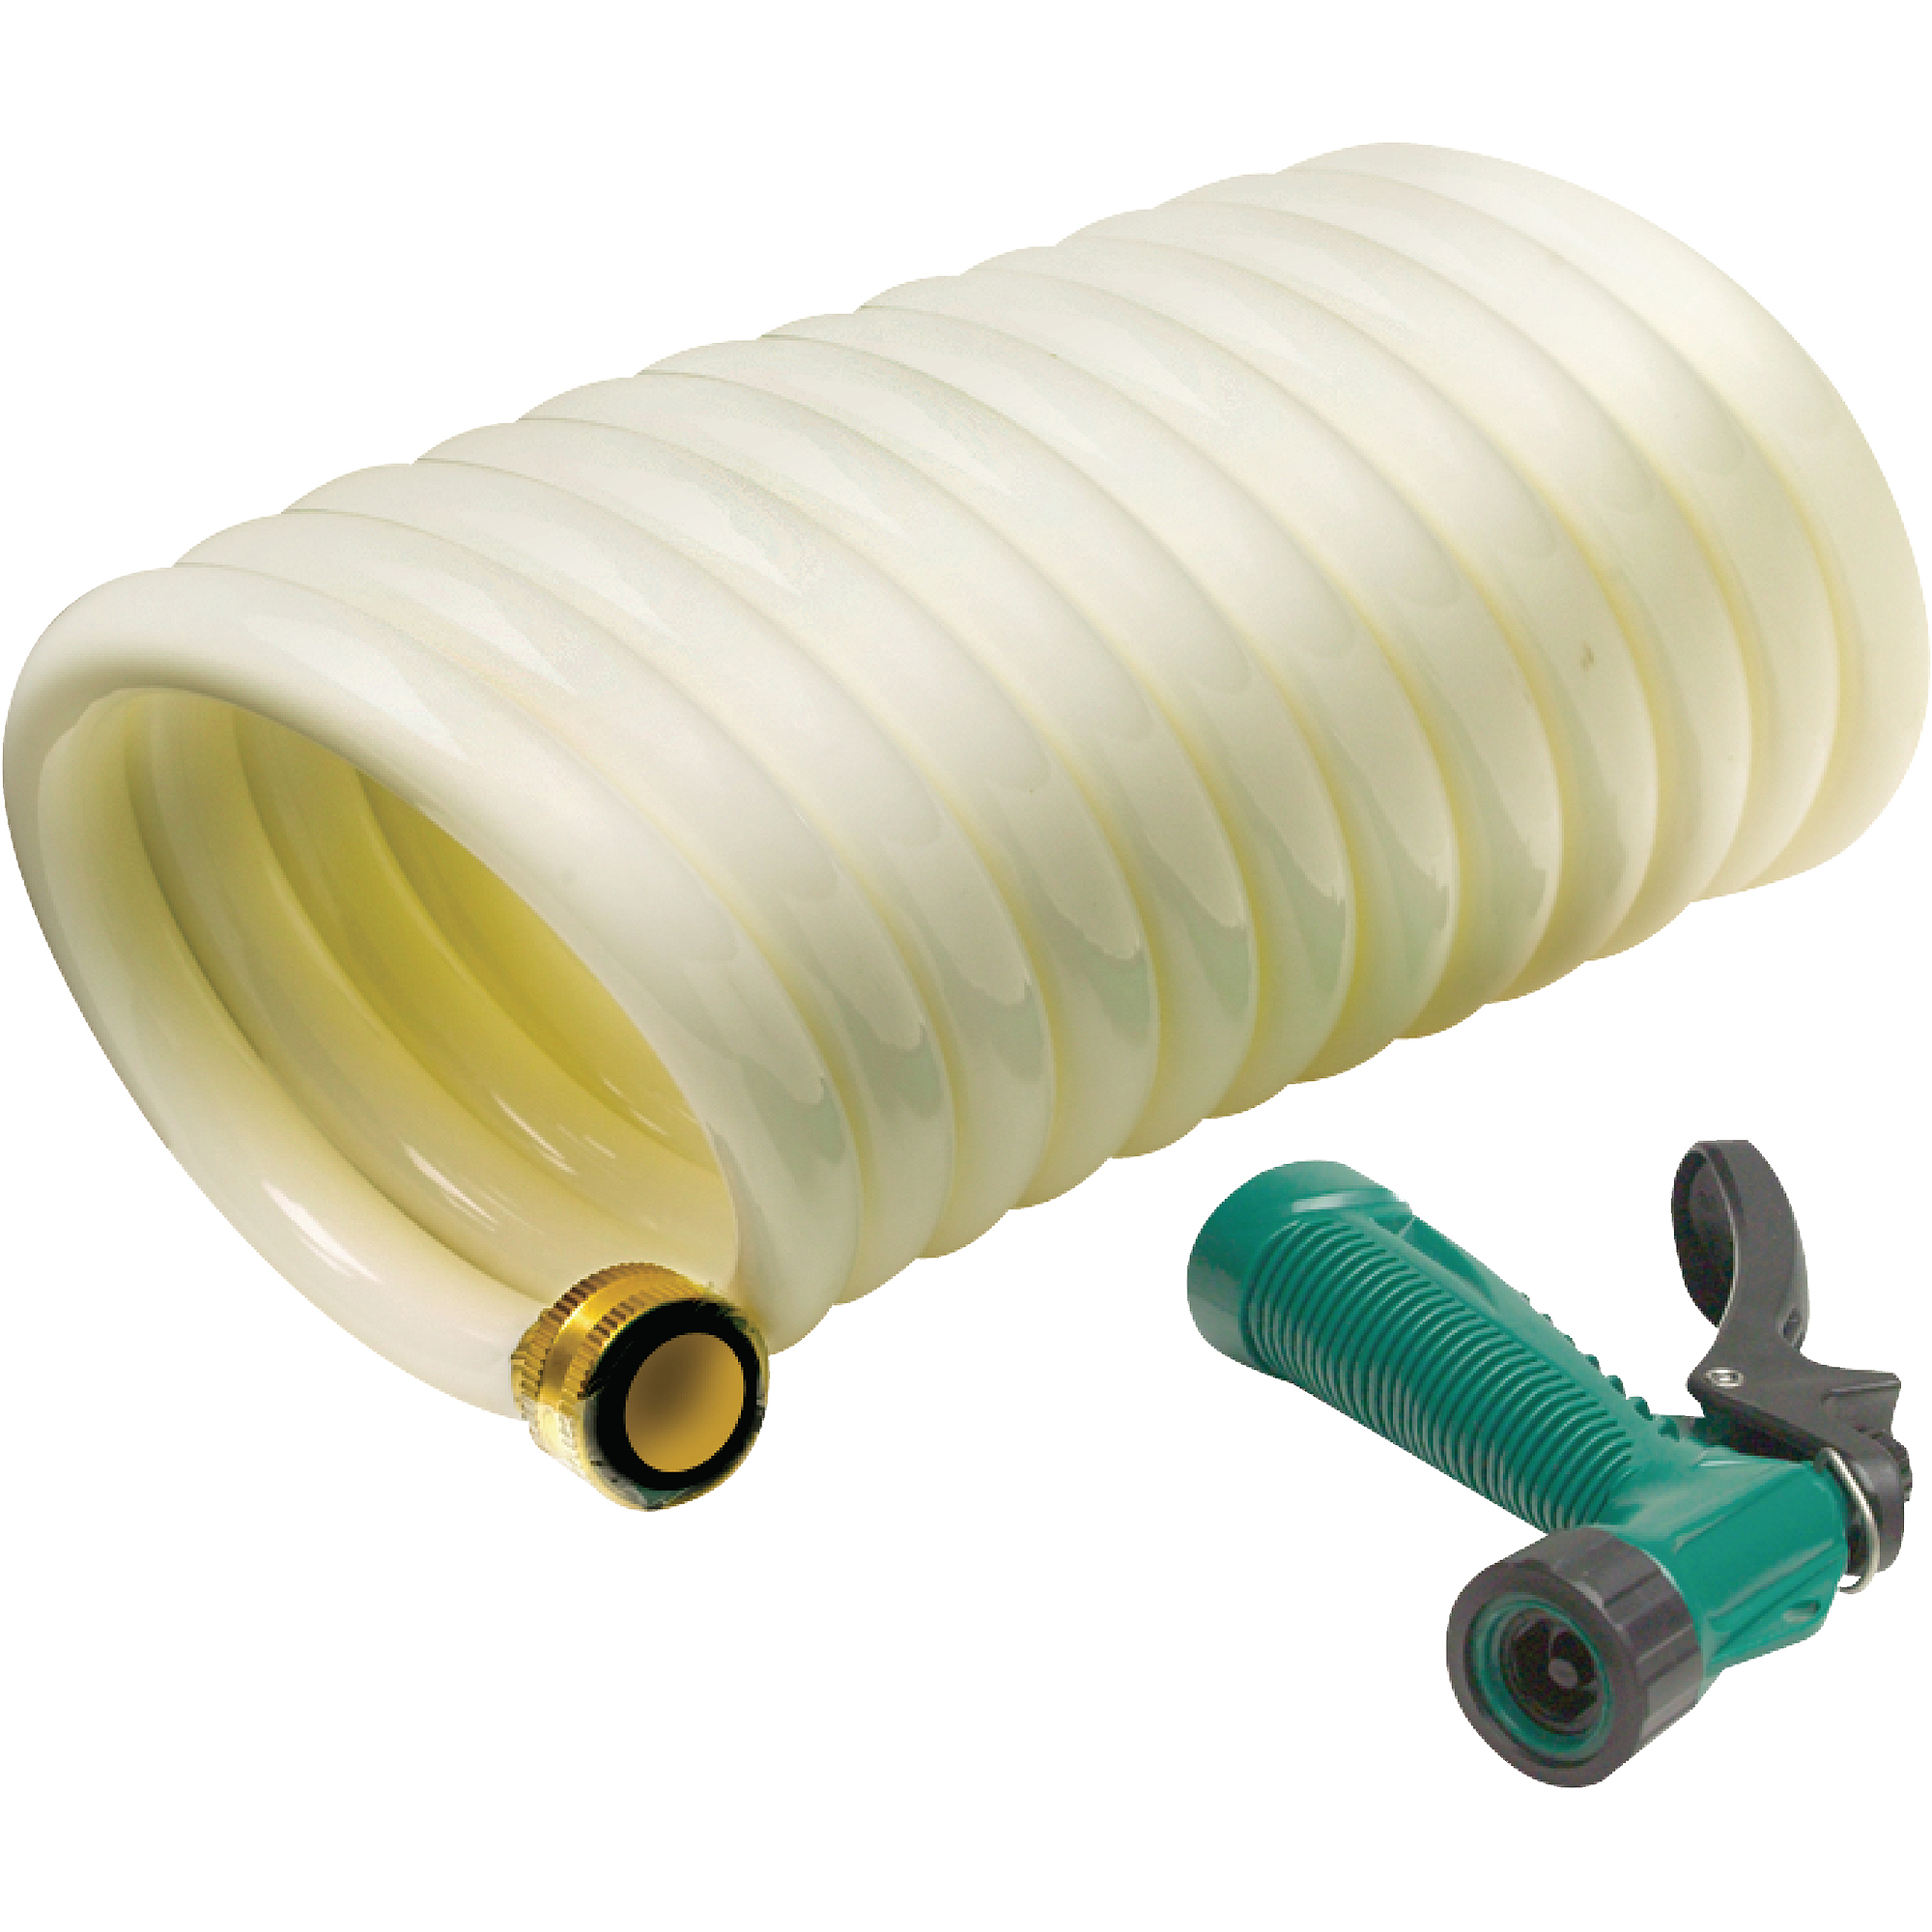 Seachoice 25' White Poly Coiled Washdown Hose with Sprayer by Seachoice Products